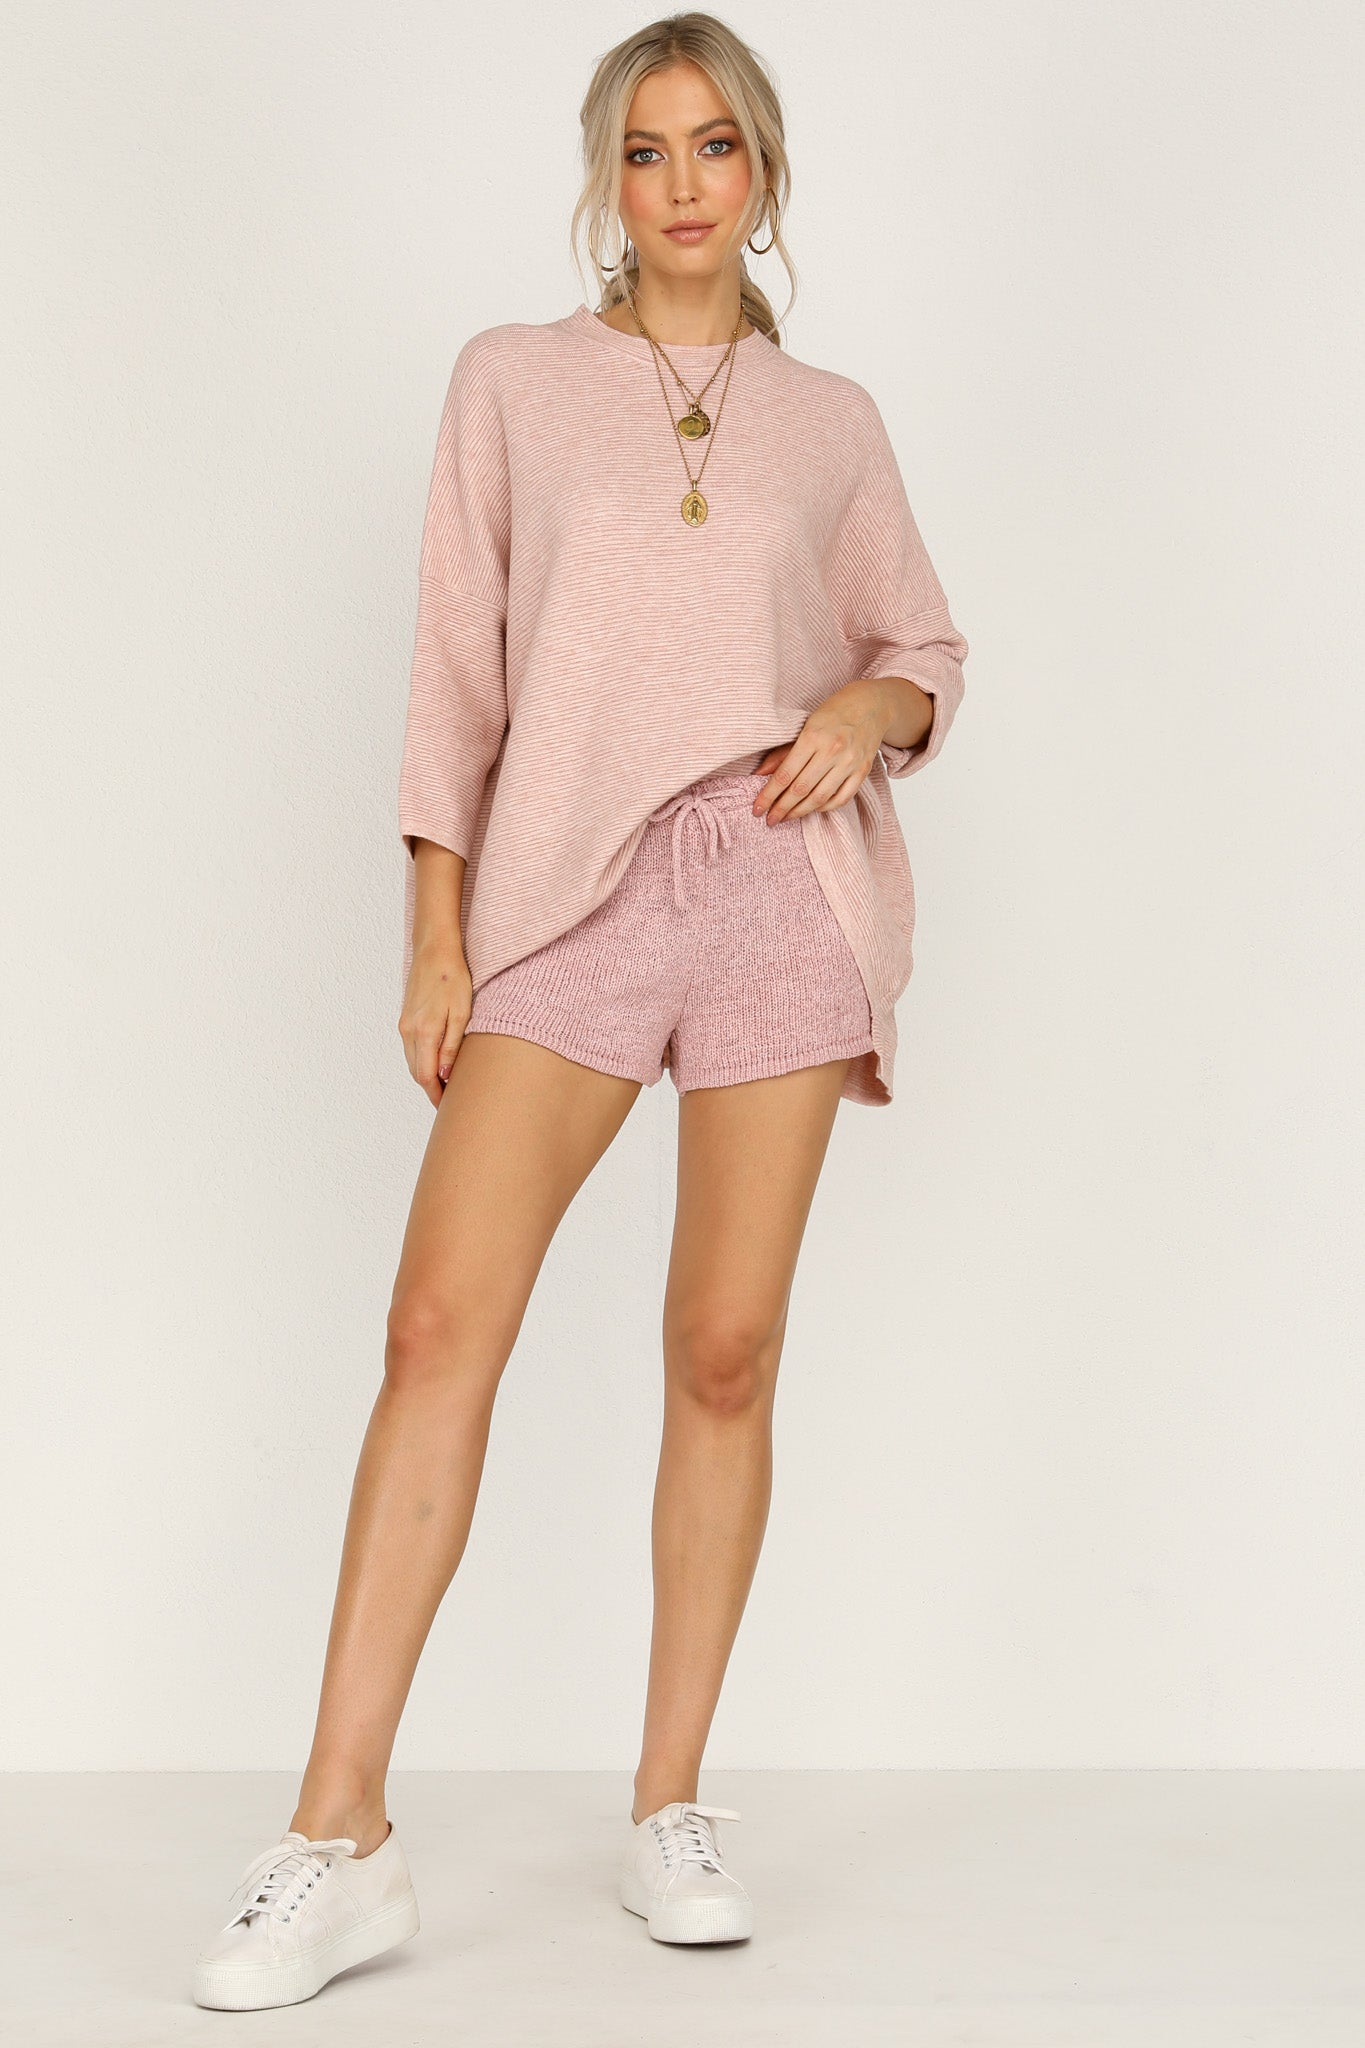 Heartbreaker Knit Top (Blush)